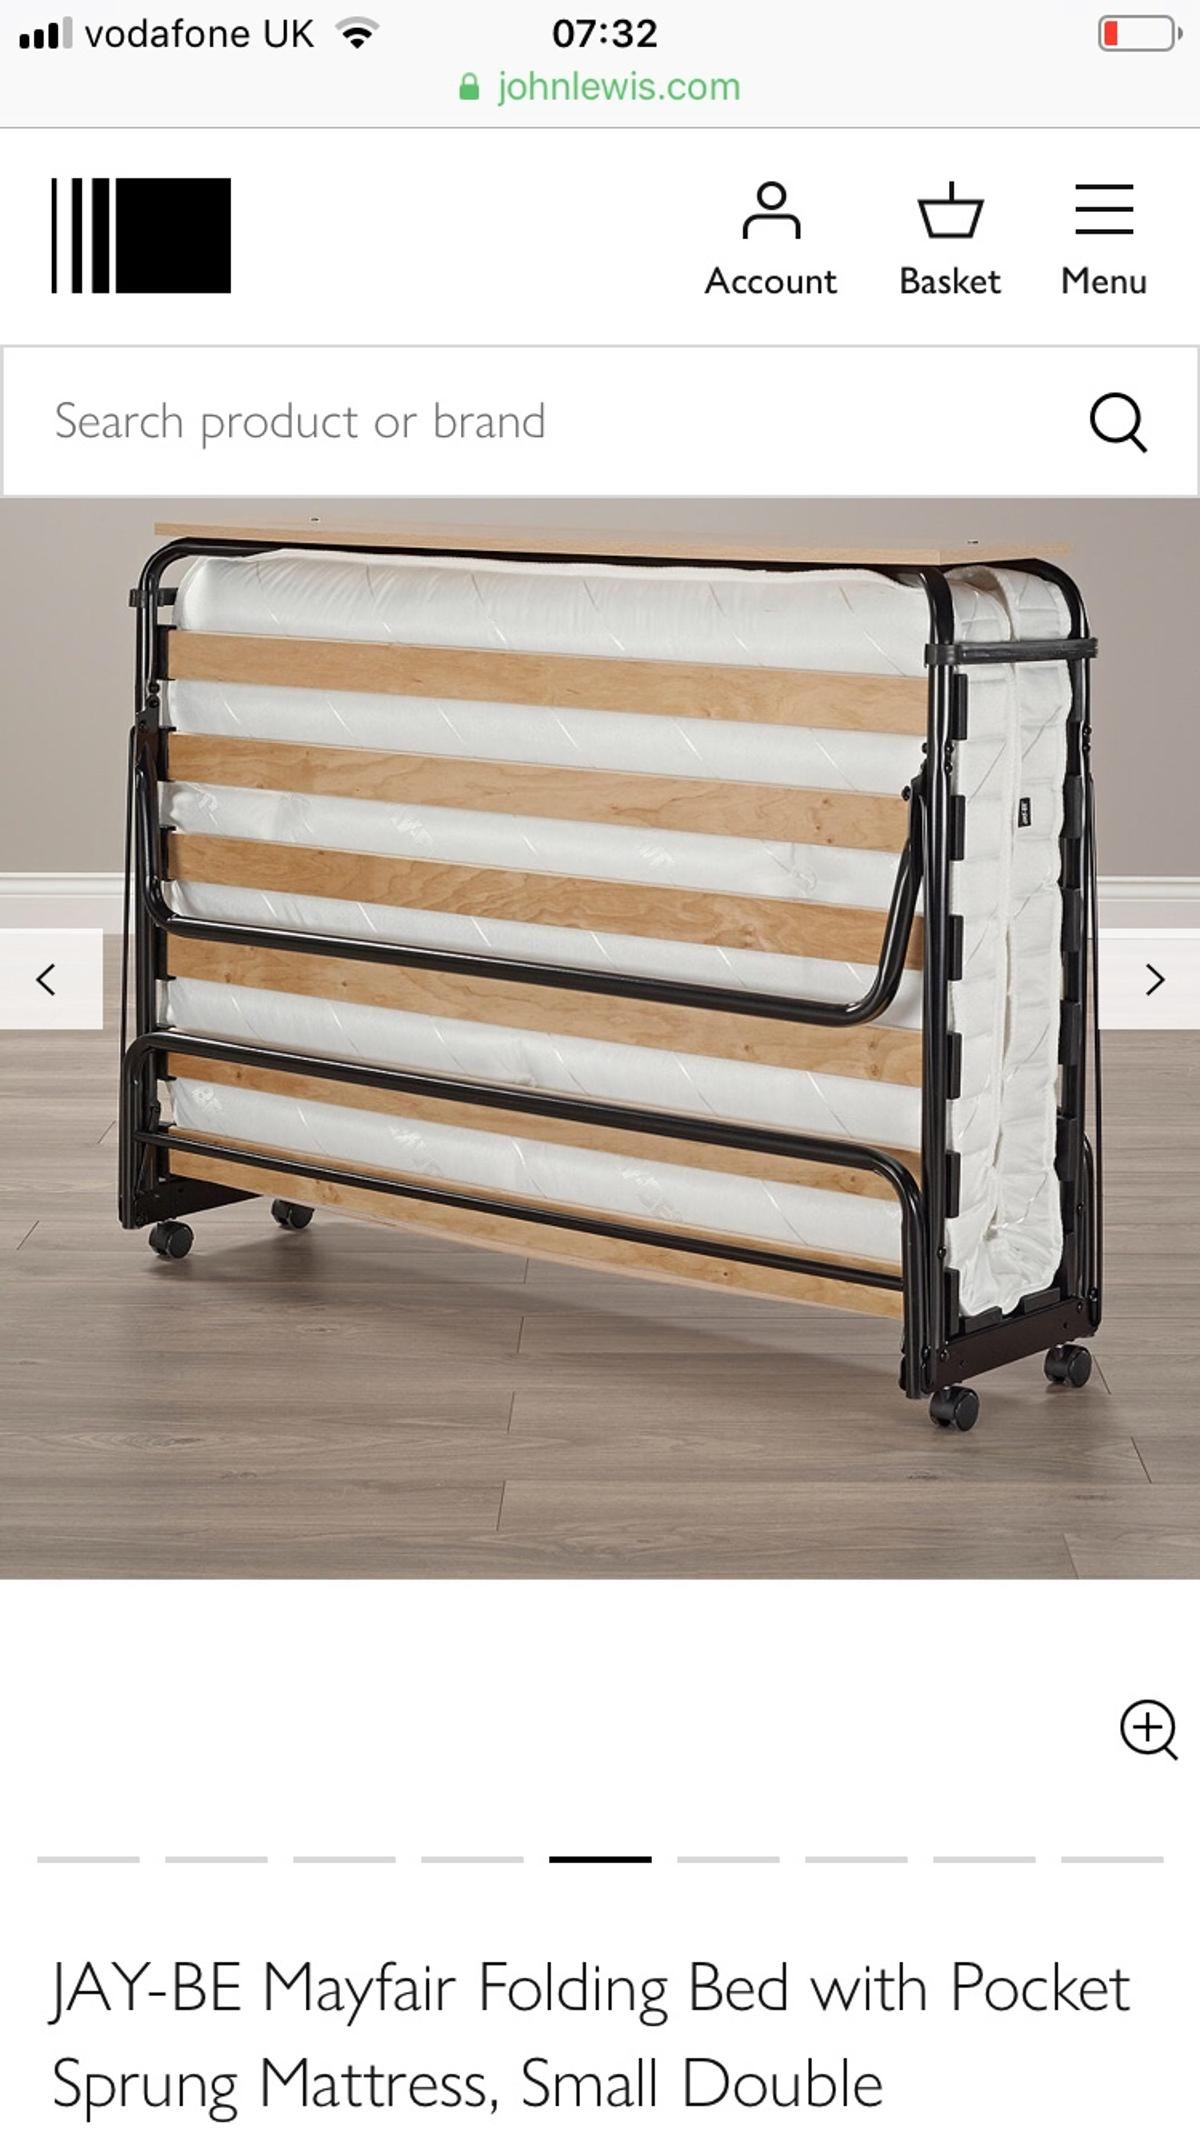 - JAY-BE Small Double Folding Bed In ME1 Rochester Für 150,00 £ Zum